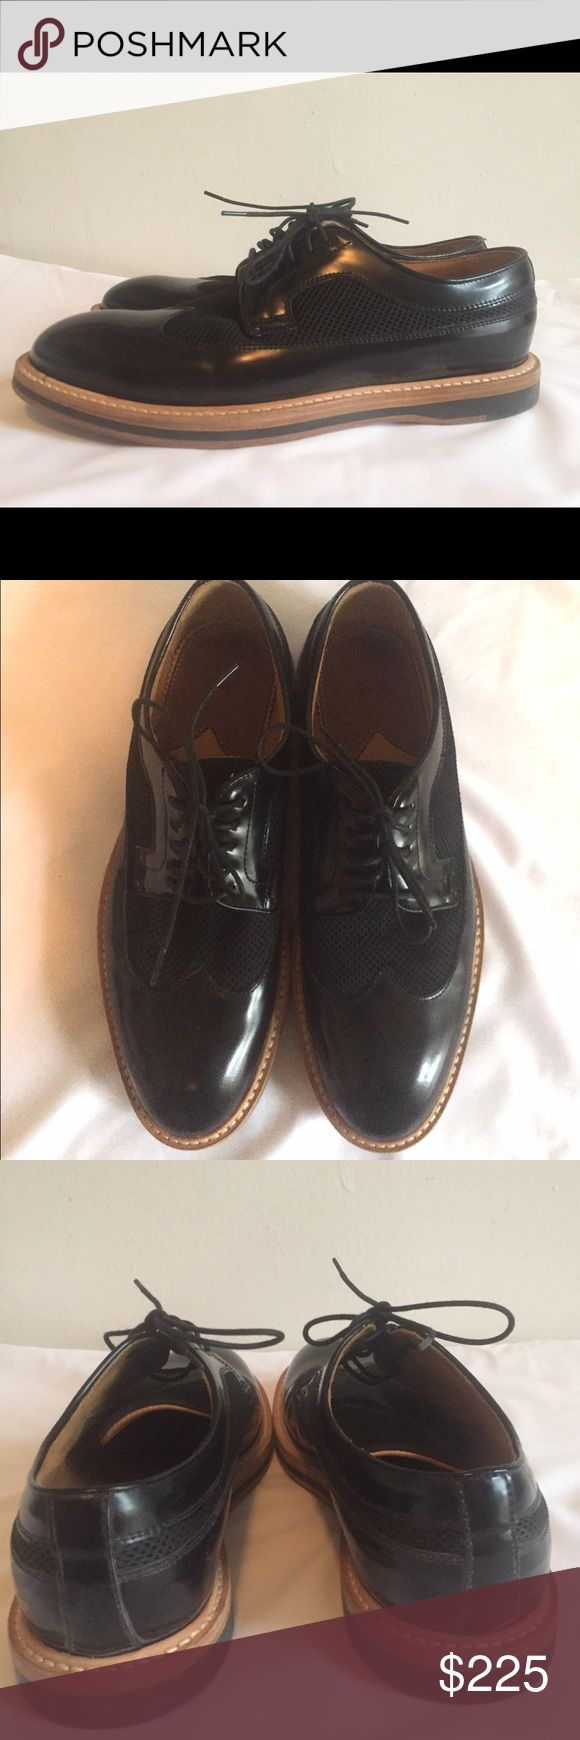 Paul Smith Women's Oxfords 38.5 Black Leather Paul Smith Women's Oxfords 38.5 Black Leather with fabric mesh. Made in Italy. Light brown wood soles. Worn a few time, slight wear on soles. No box. Paul Smith Shoes Flats & Loafers